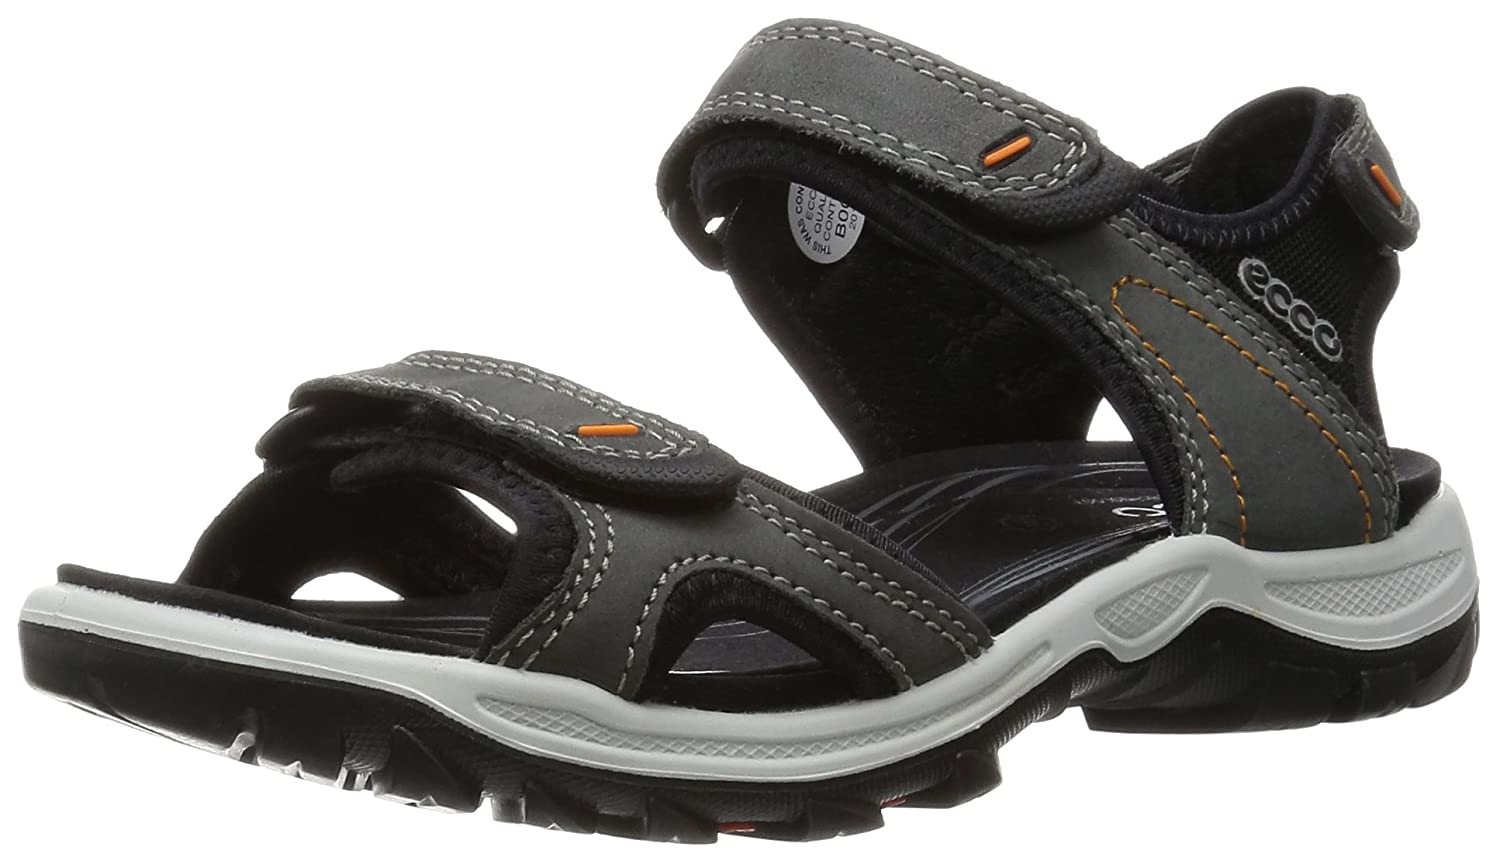 050a58e6c1d1 Buy ecco offroad lite   Up to OFF49% Discounted